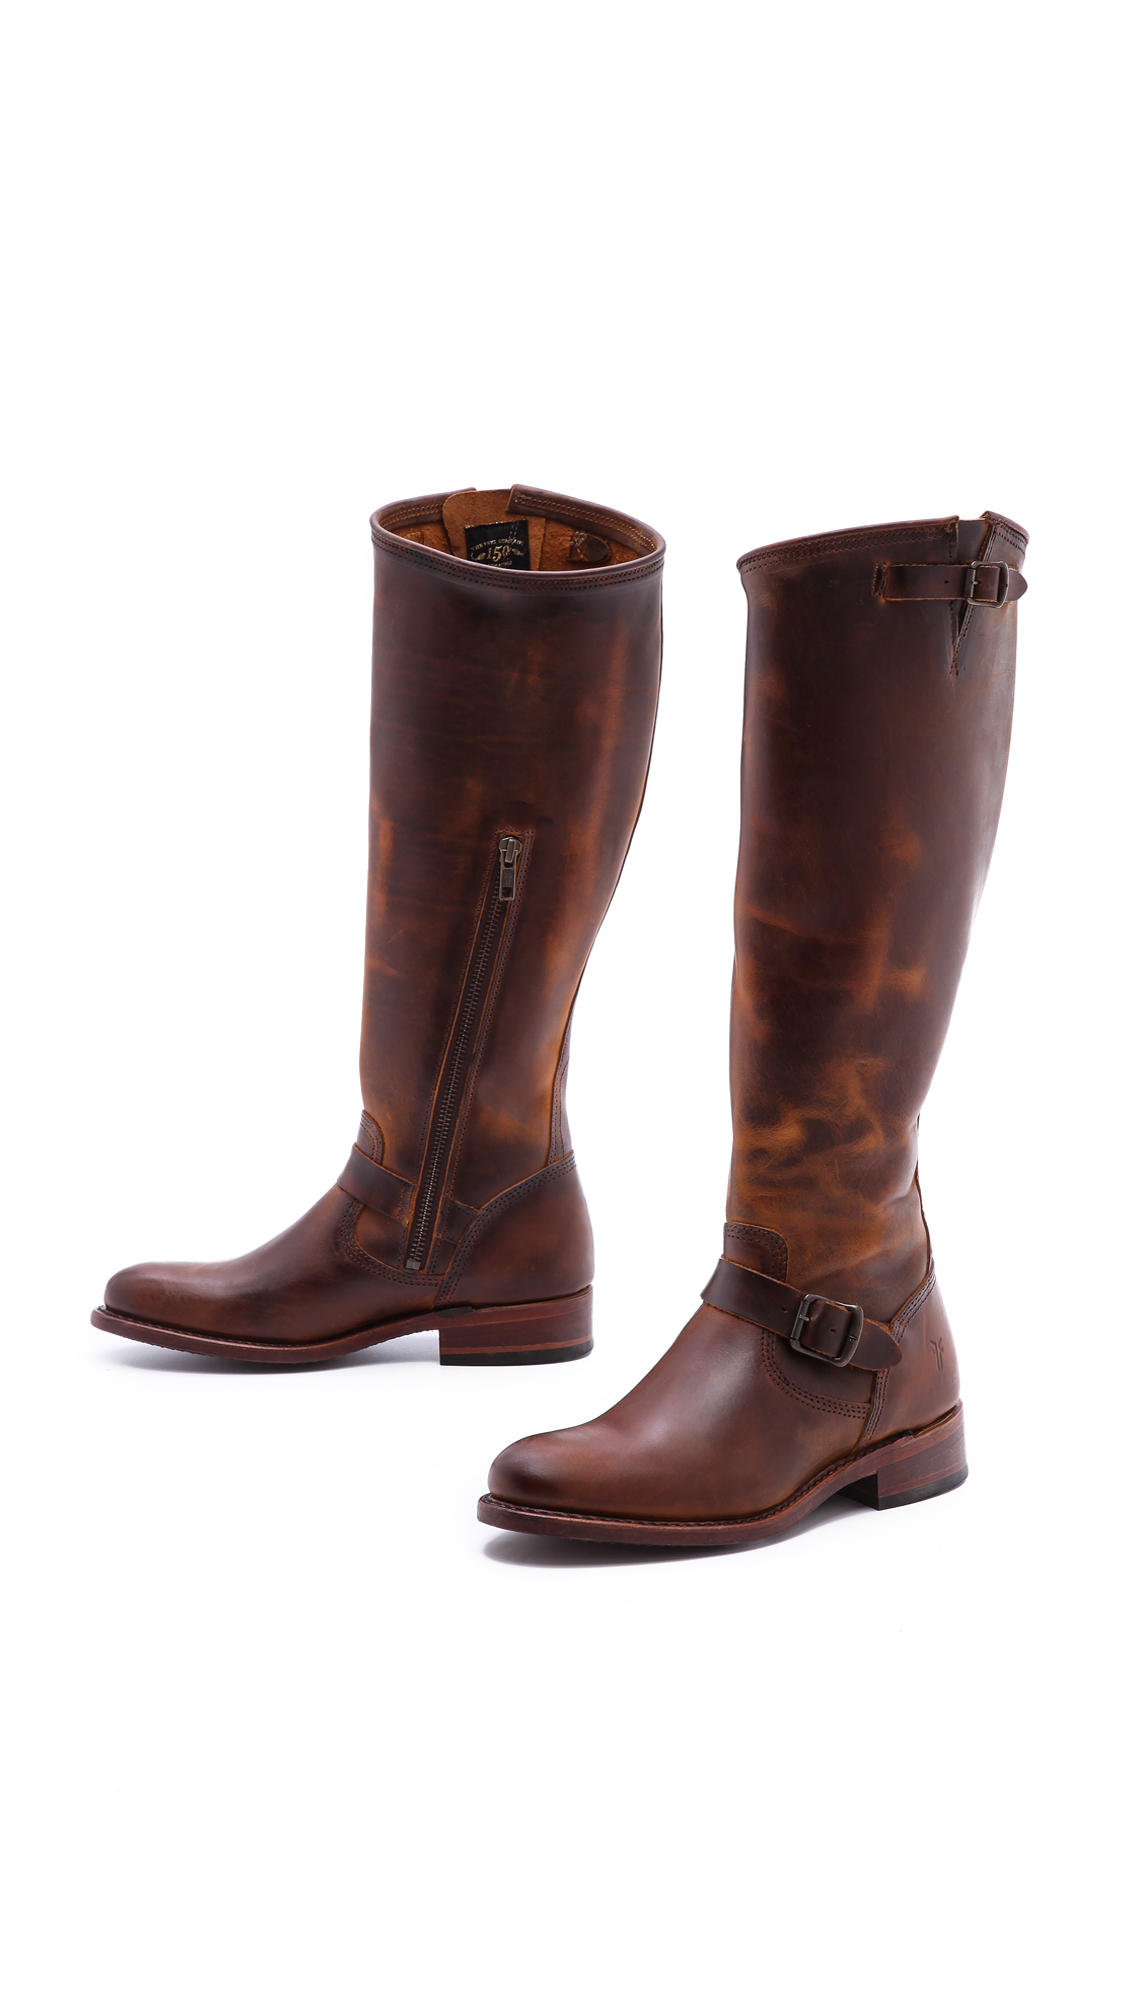 engineer boots - Shop for and Buy engineer boots Online ...